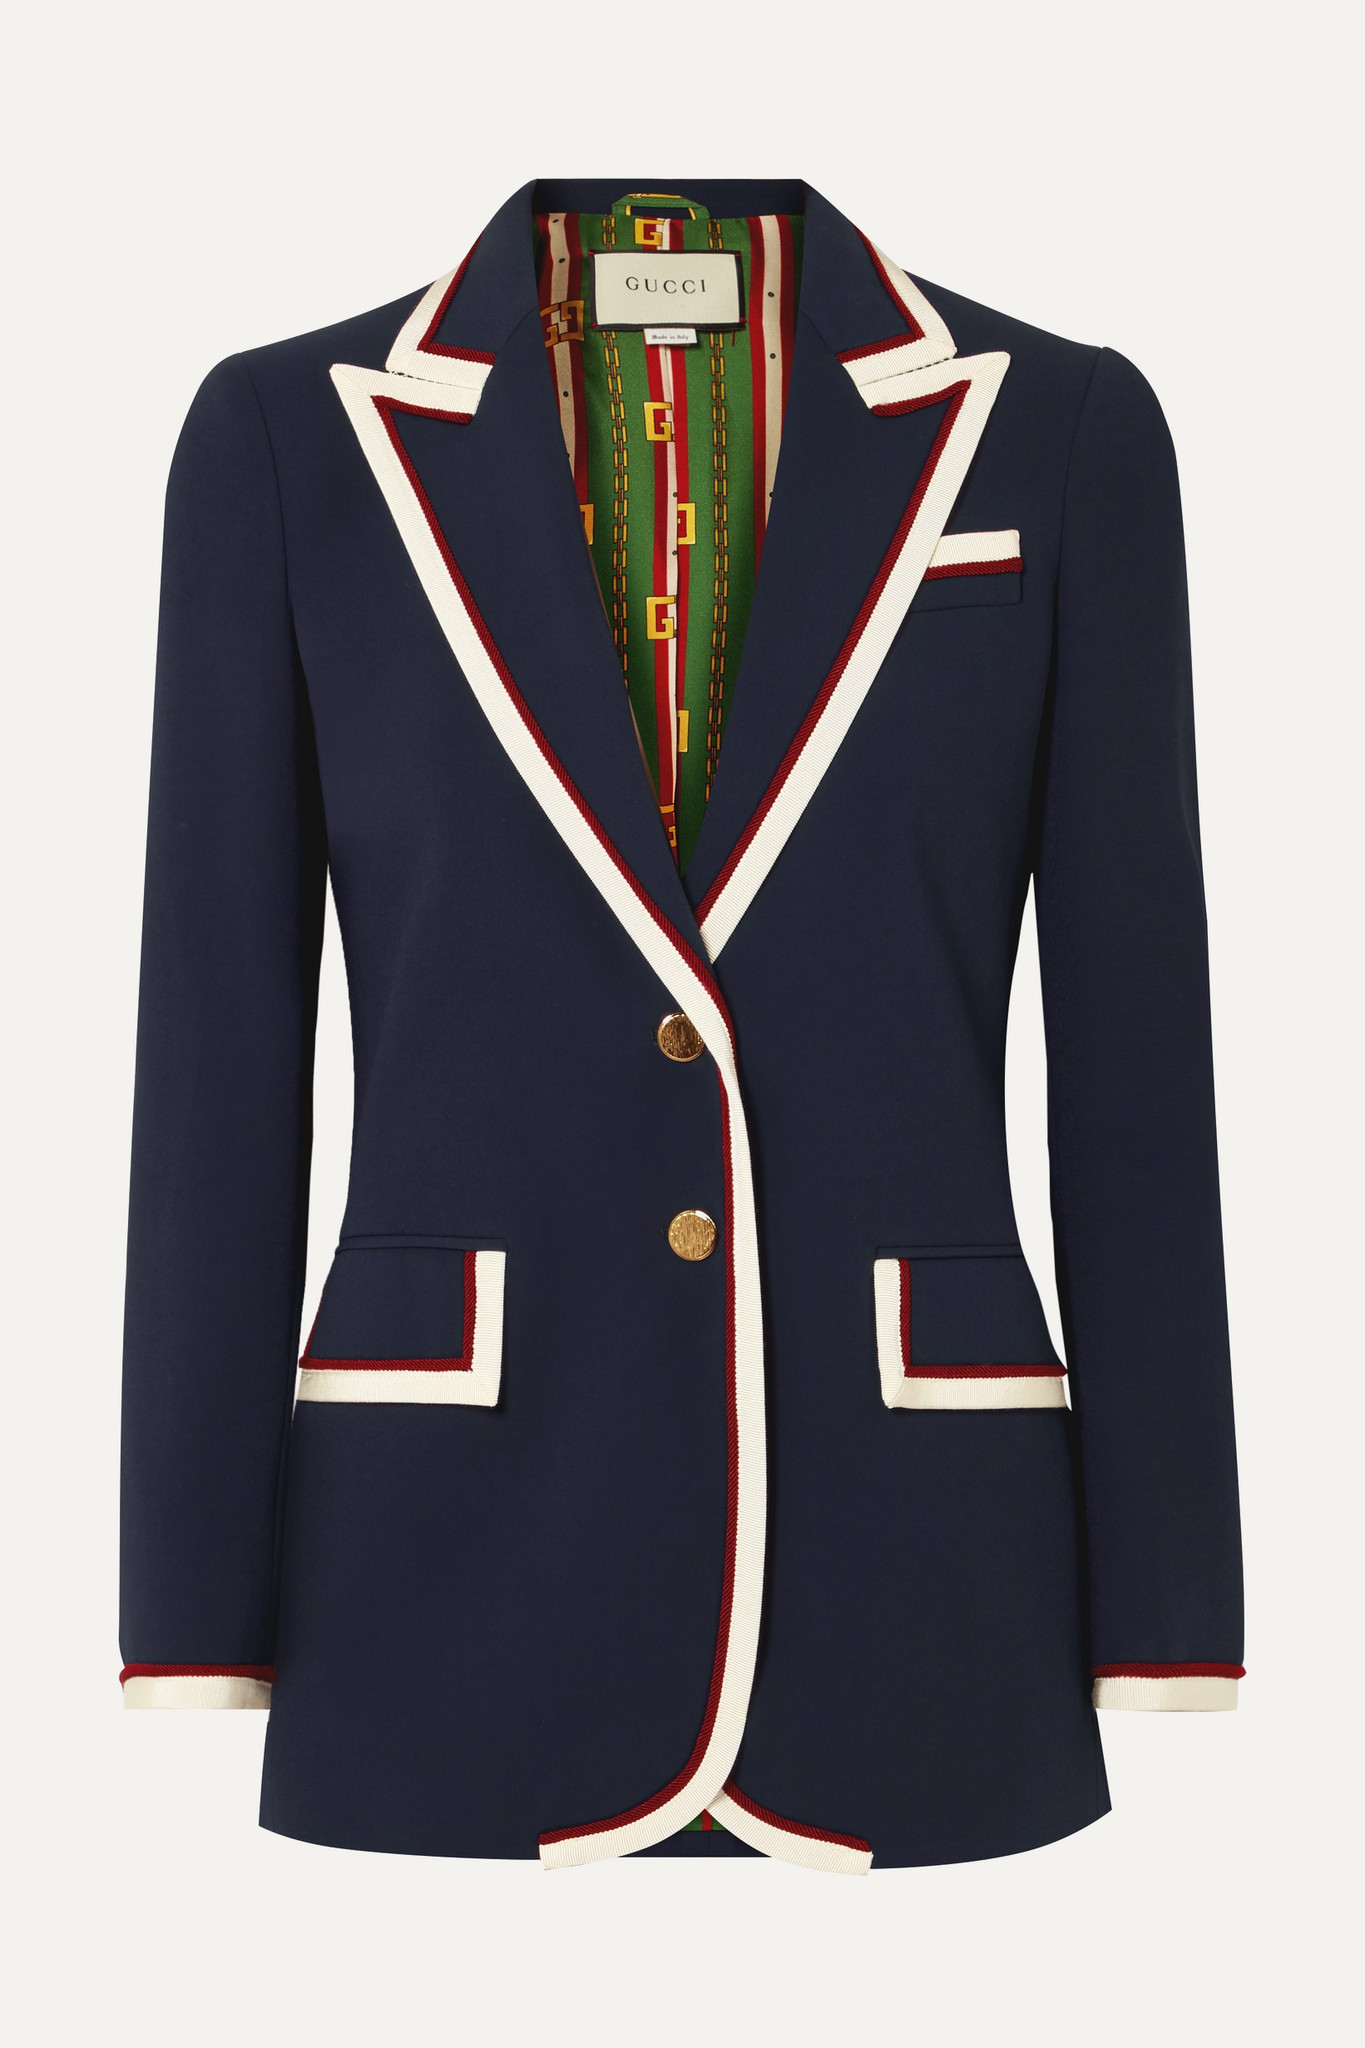 GUCCI - Grosgrain-trimmed Cady Blazer - Blue - IT40